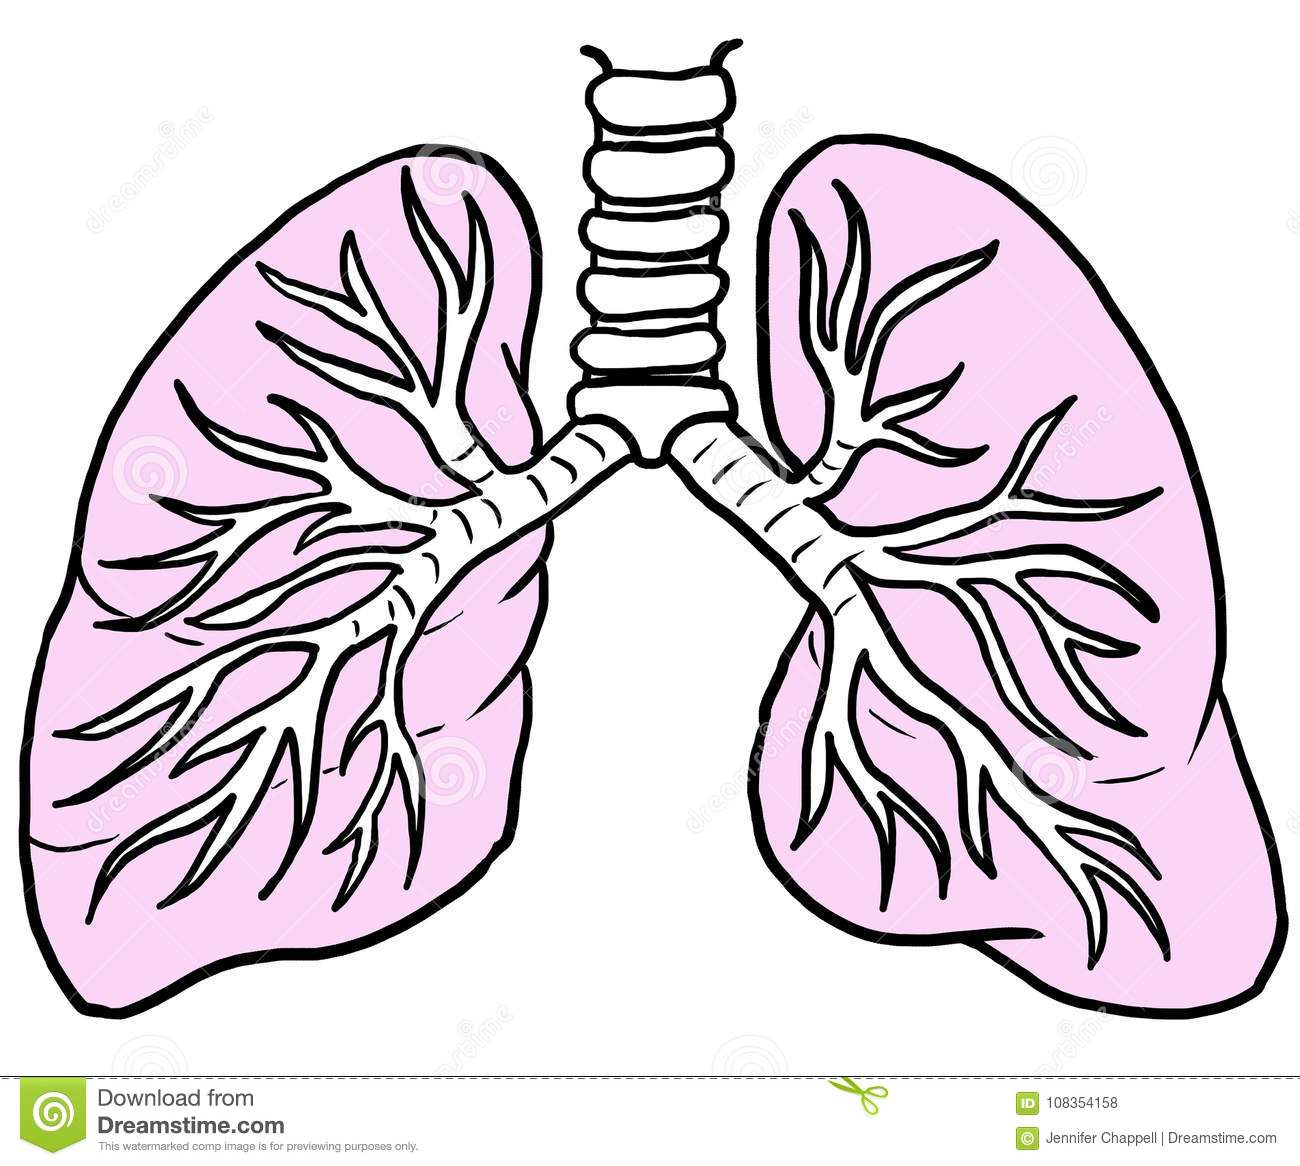 It's just a picture of Dynamic Human Lungs Drawing